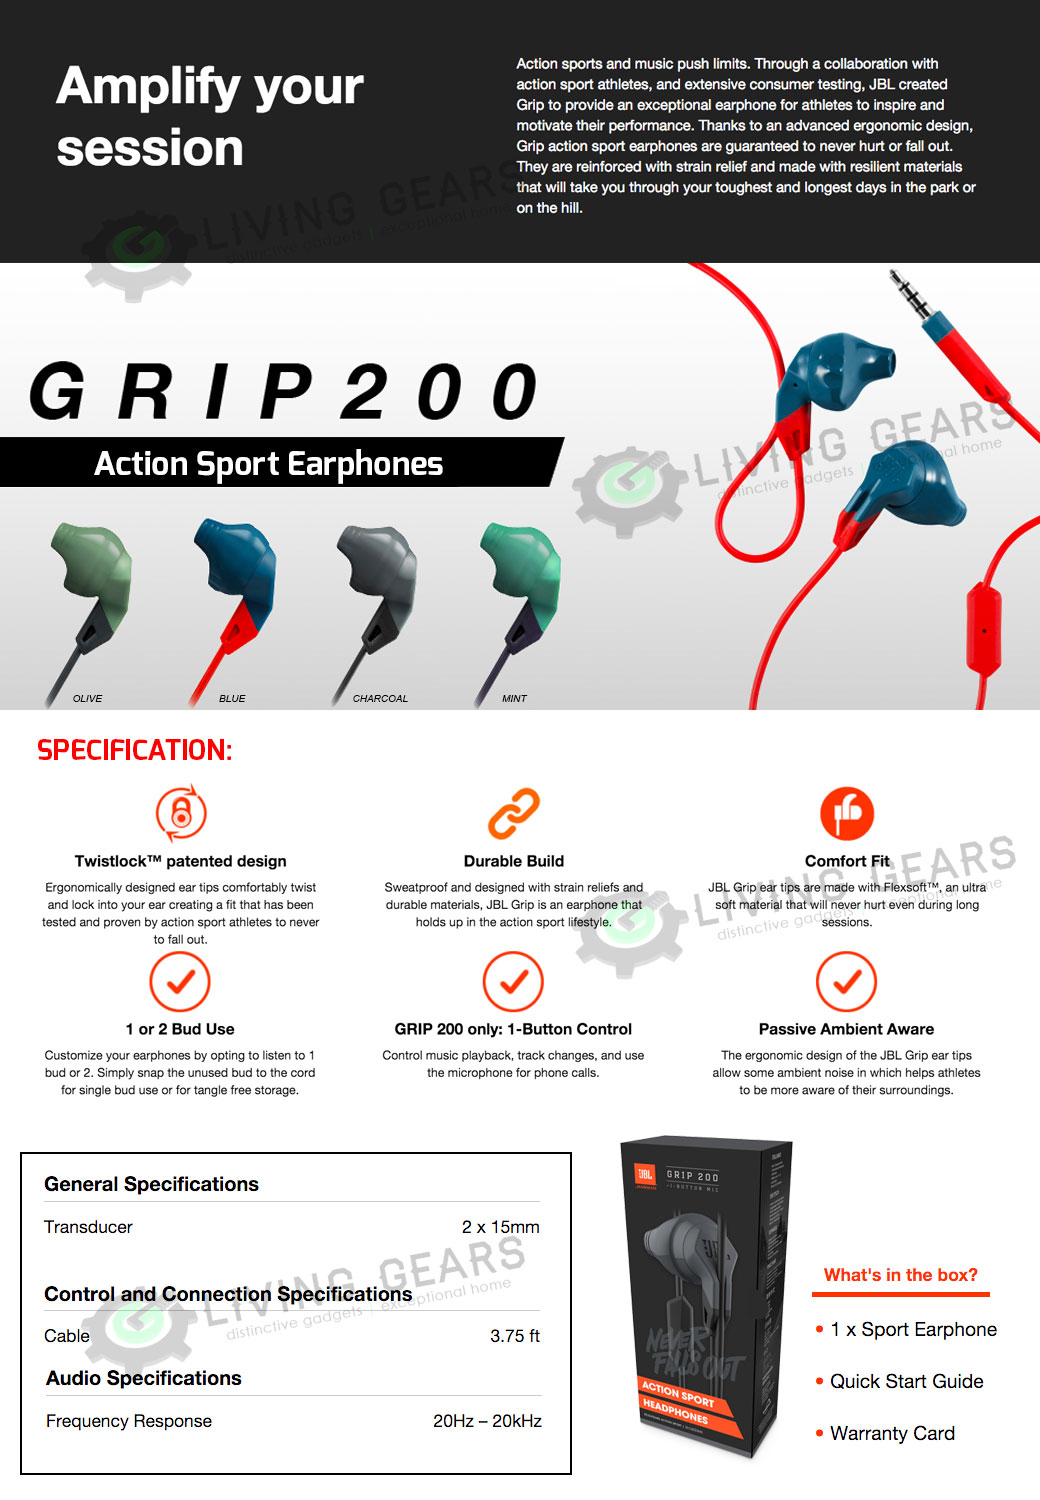 jbl grip 200. jbl grip 200 action sport earphones | ces 2016 jbl